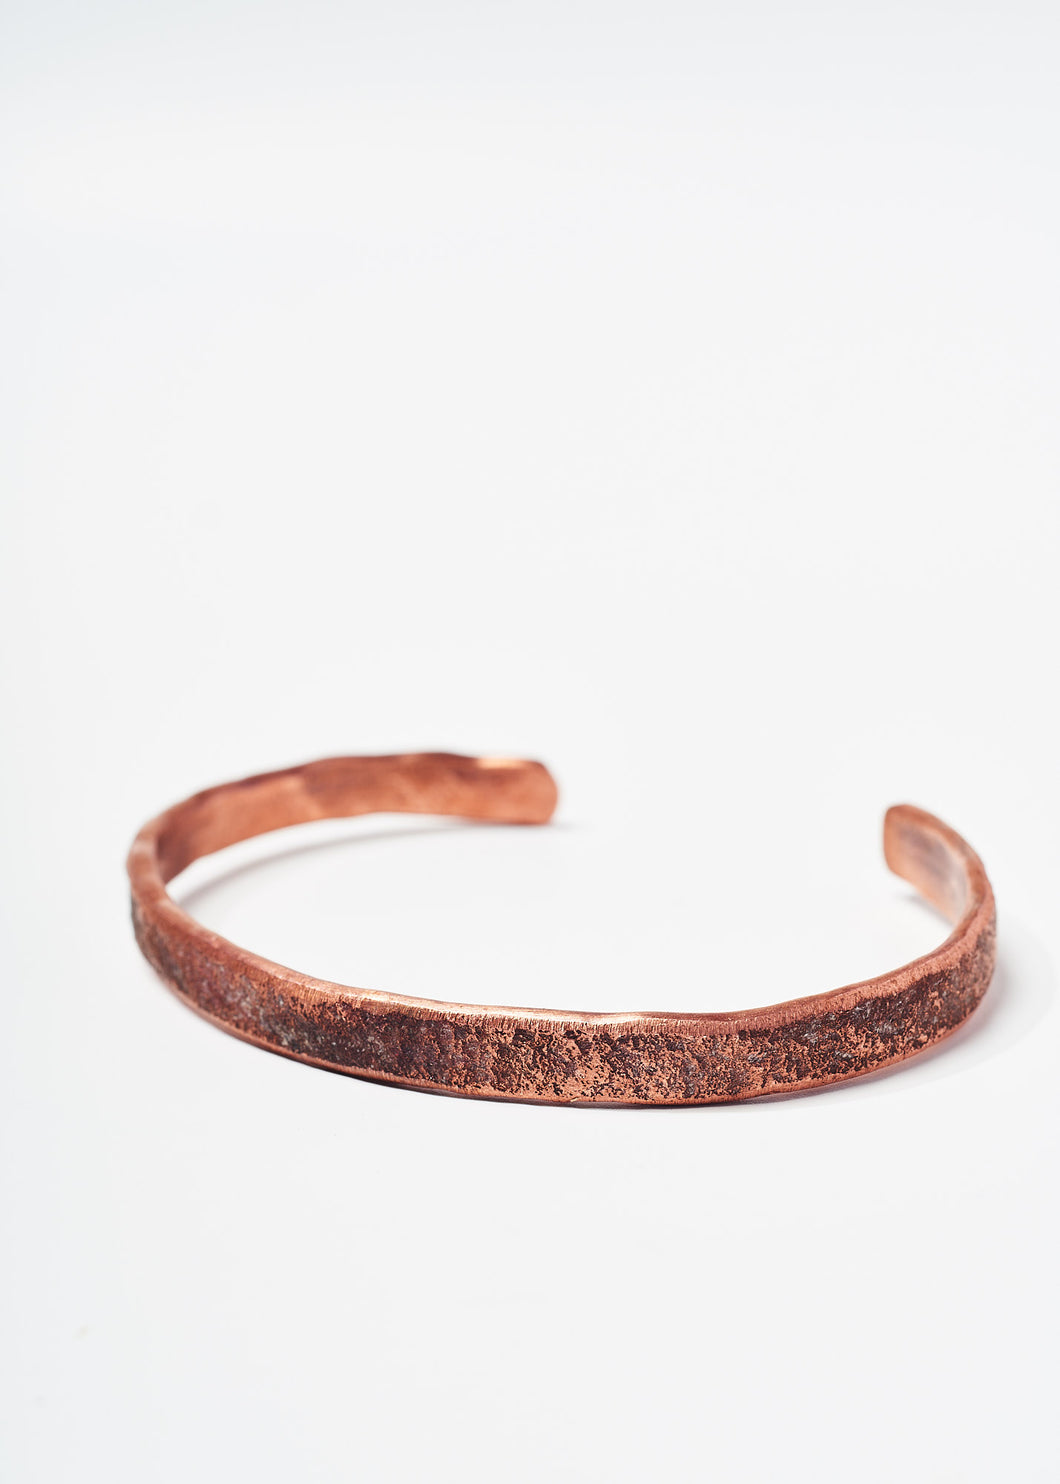 Oxidized Copper Cuff